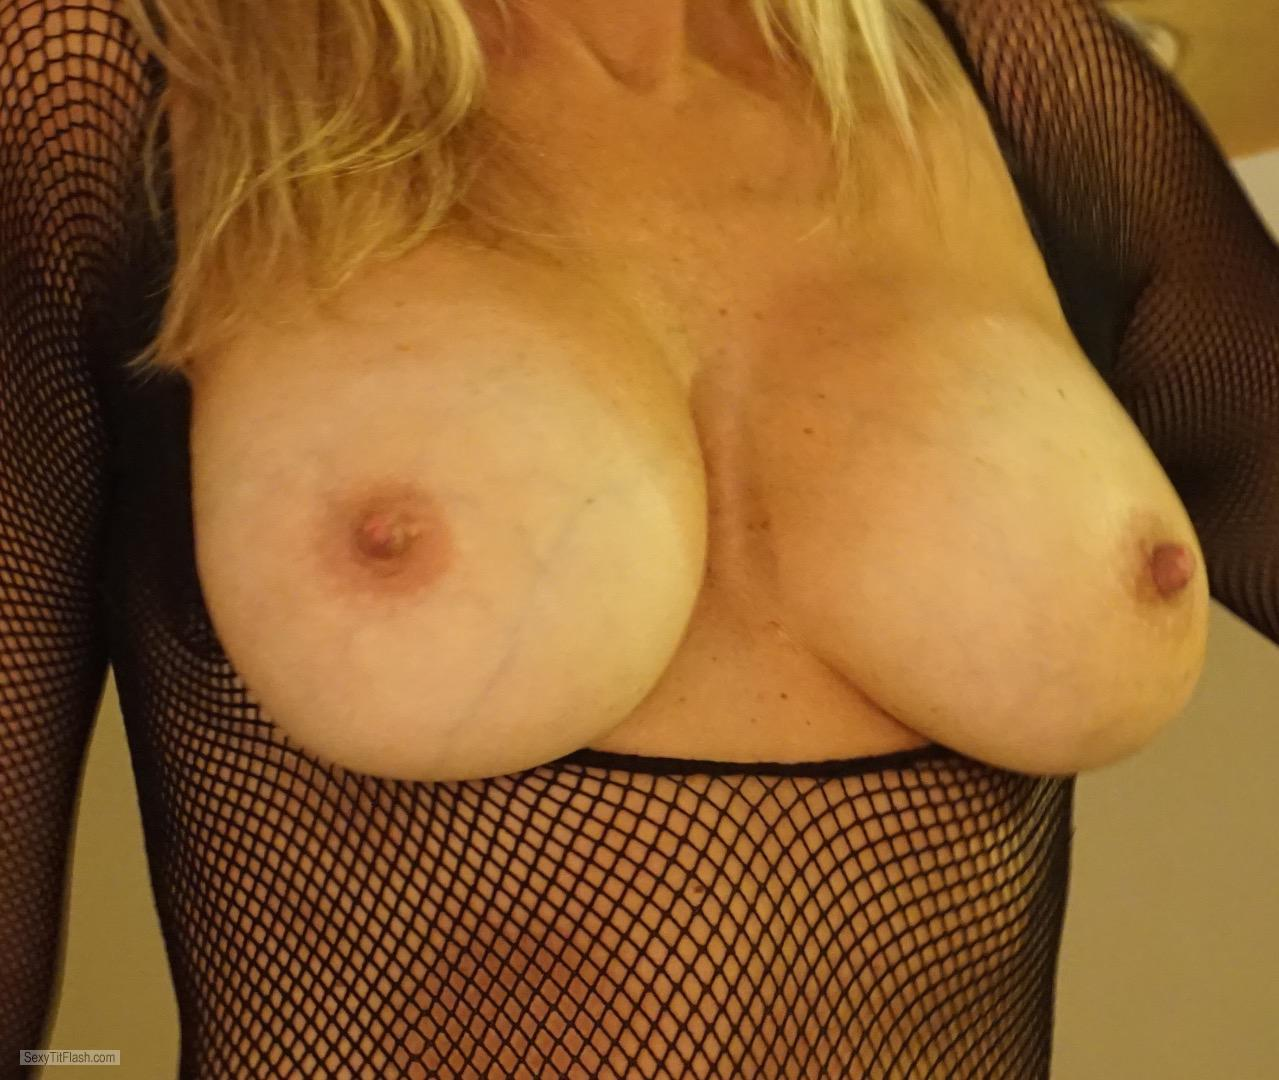 My Very small Tits Topless Hot Wifey